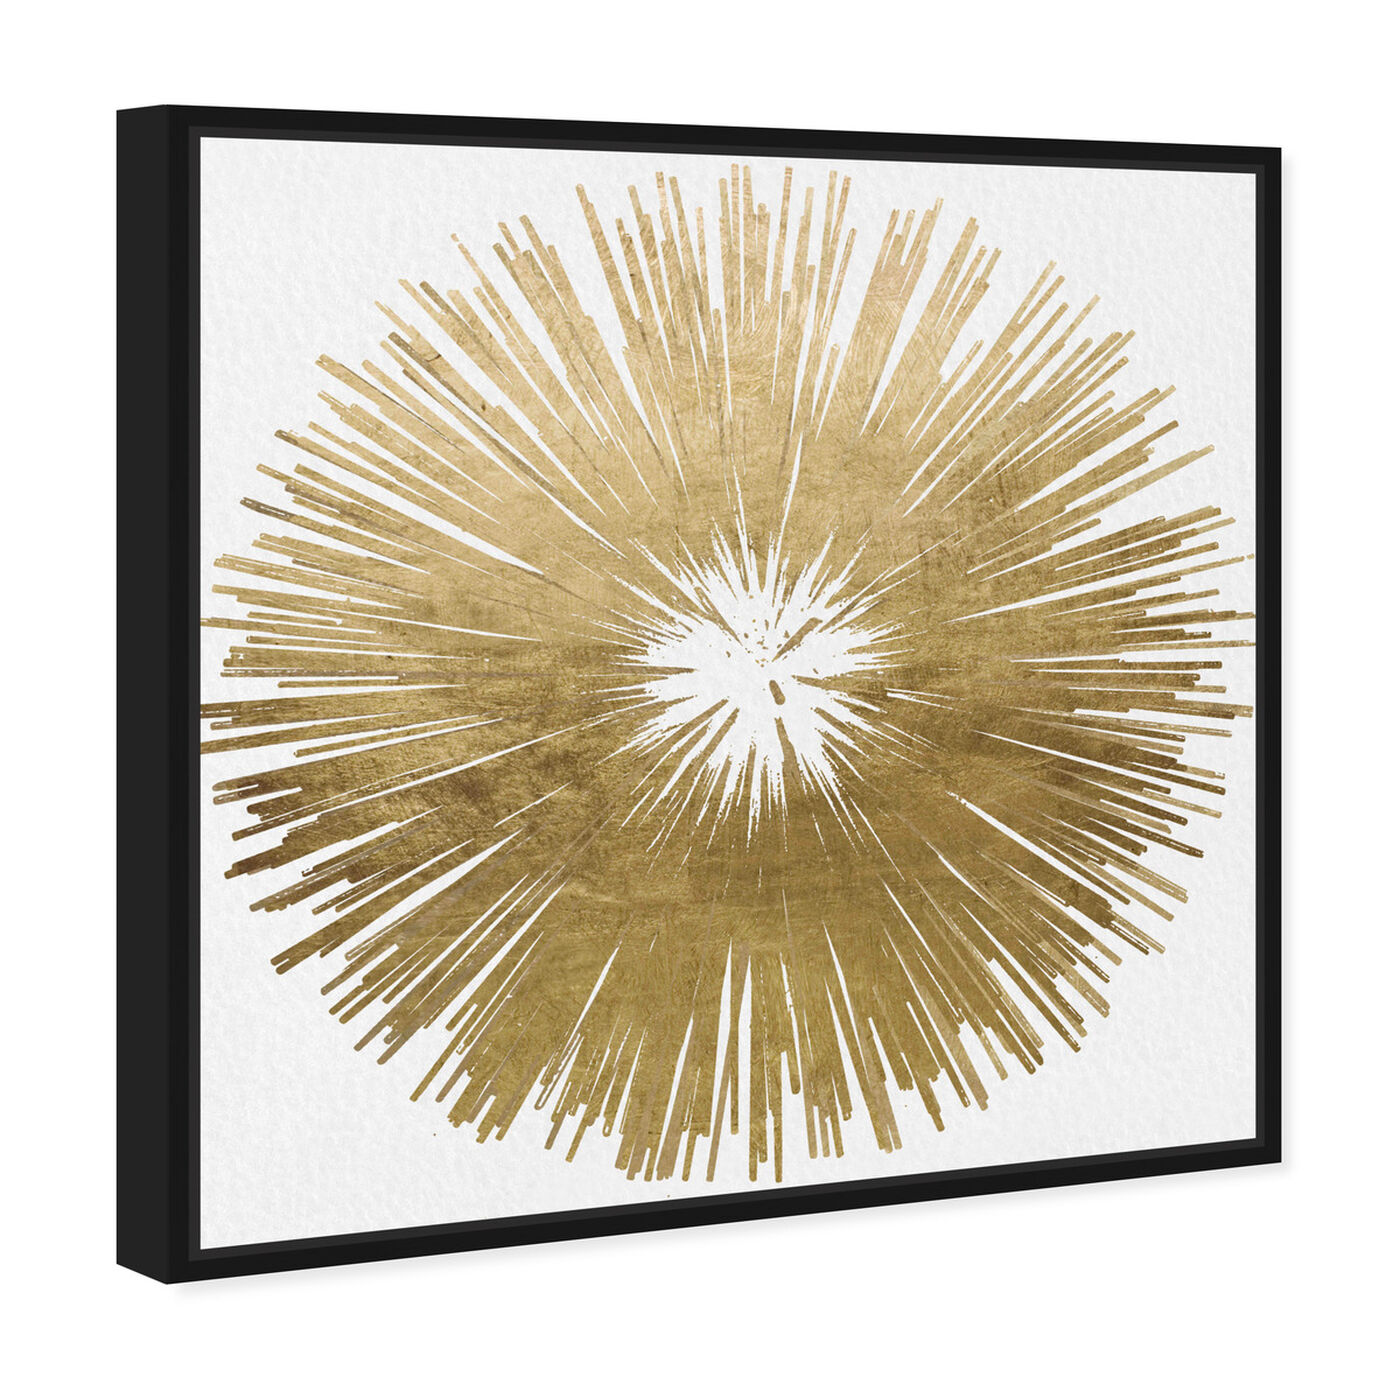 Angled view of Sunburst Golden featuring symbols and objects and symbols art.